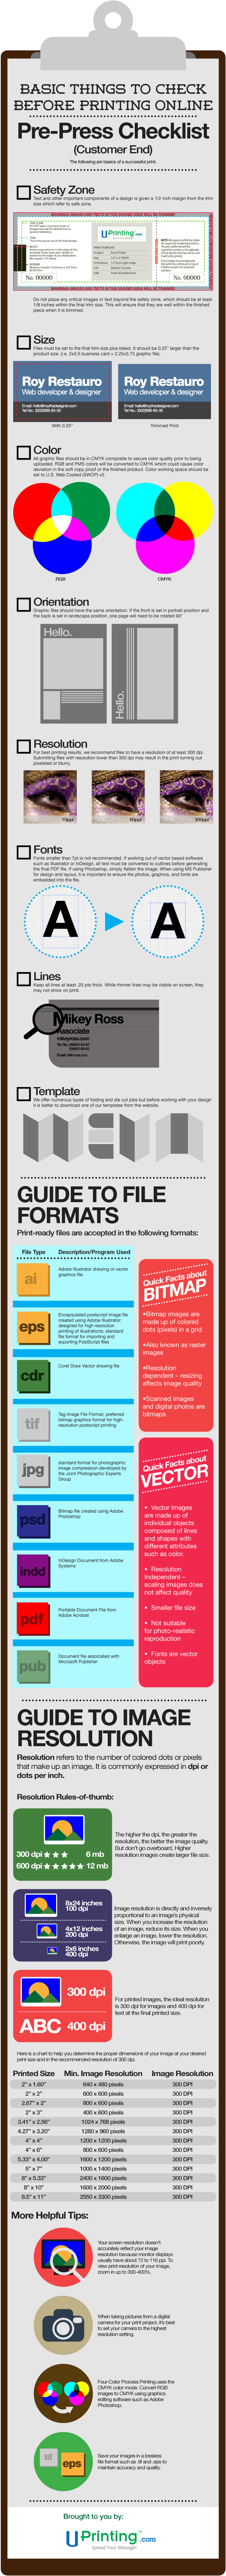 Guide to Online Printing, Checklist Before Printing